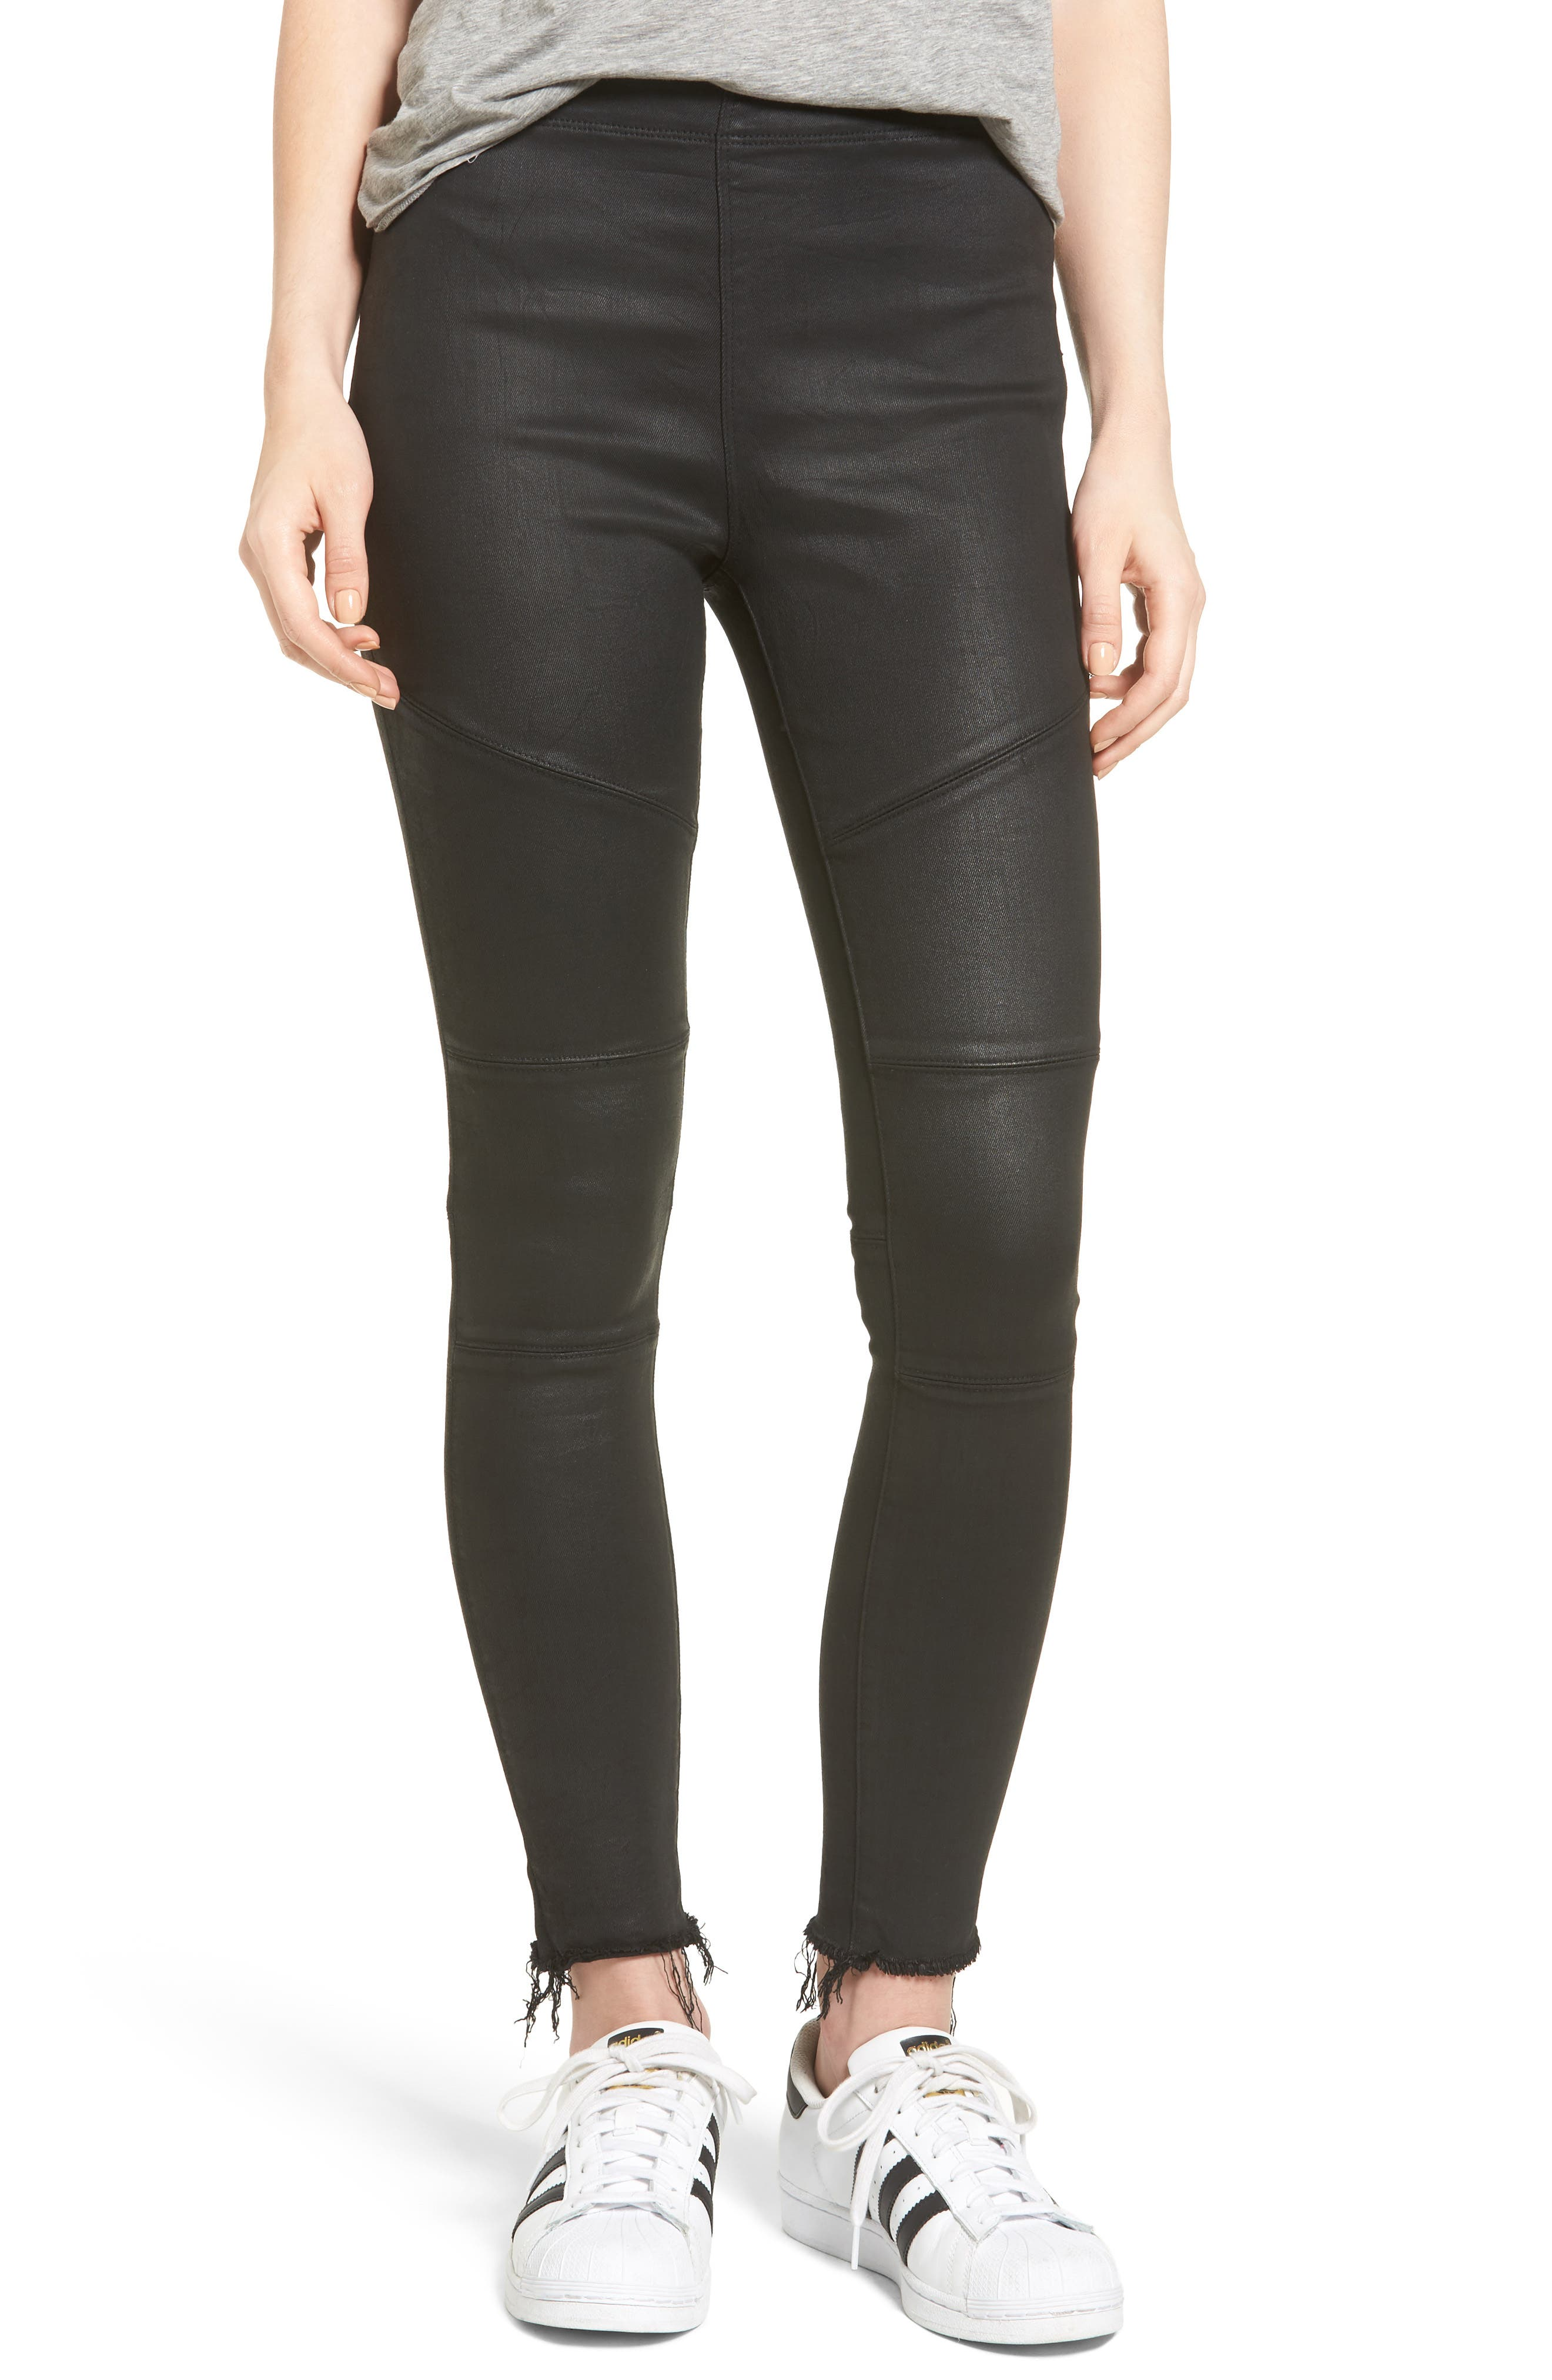 Haven Coated Denim Leggings,                         Main,                         color, Asphalt